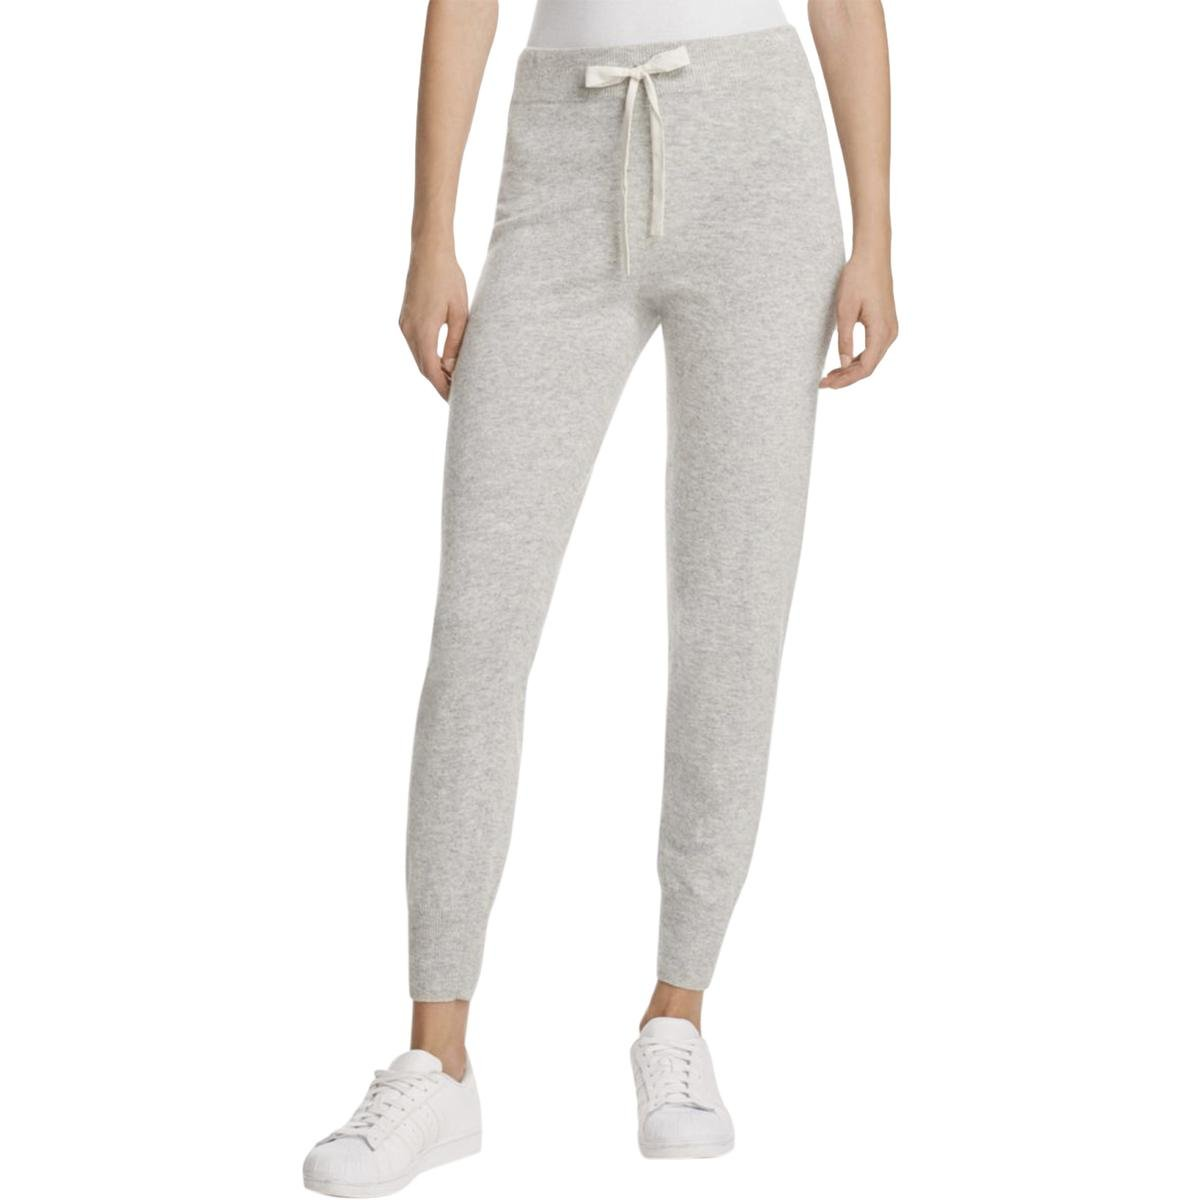 Elizabeth and James Women's Sandra Knit Pants, Heather Grey, Small